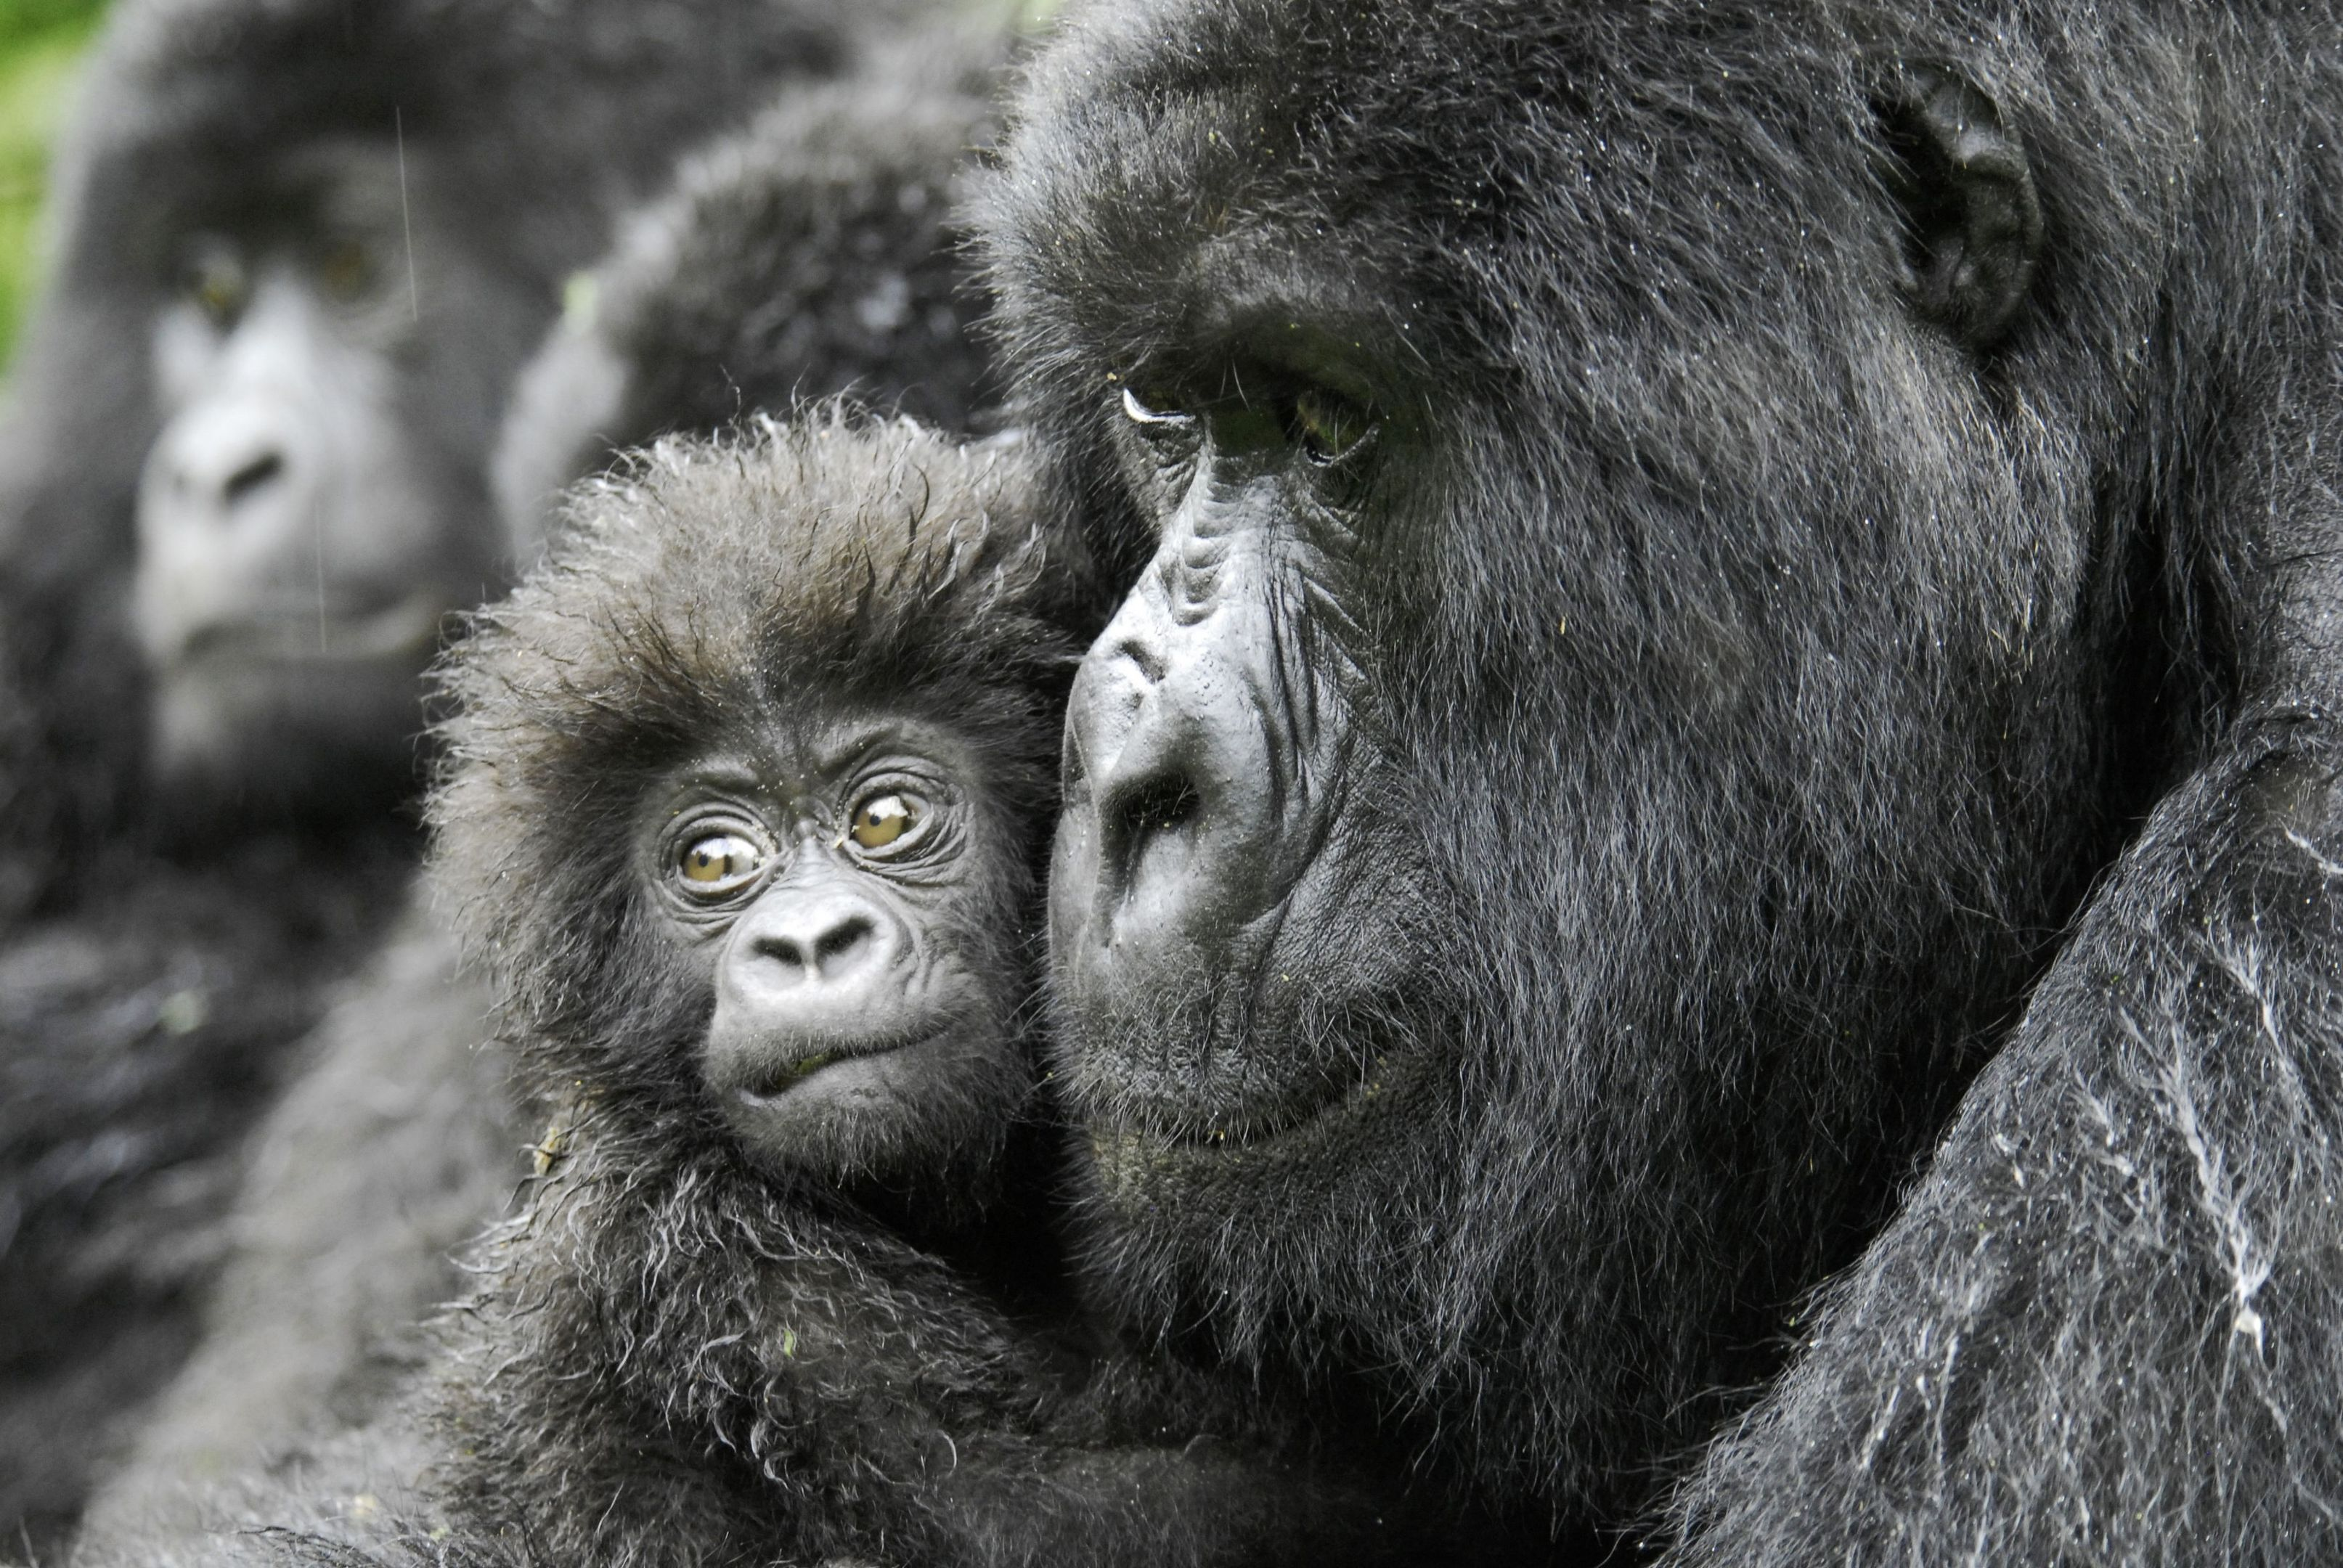 Female gorilla and a 4-month old baby named Kabila. (Russell A Mittermeier/Conservation International/PA Wire)